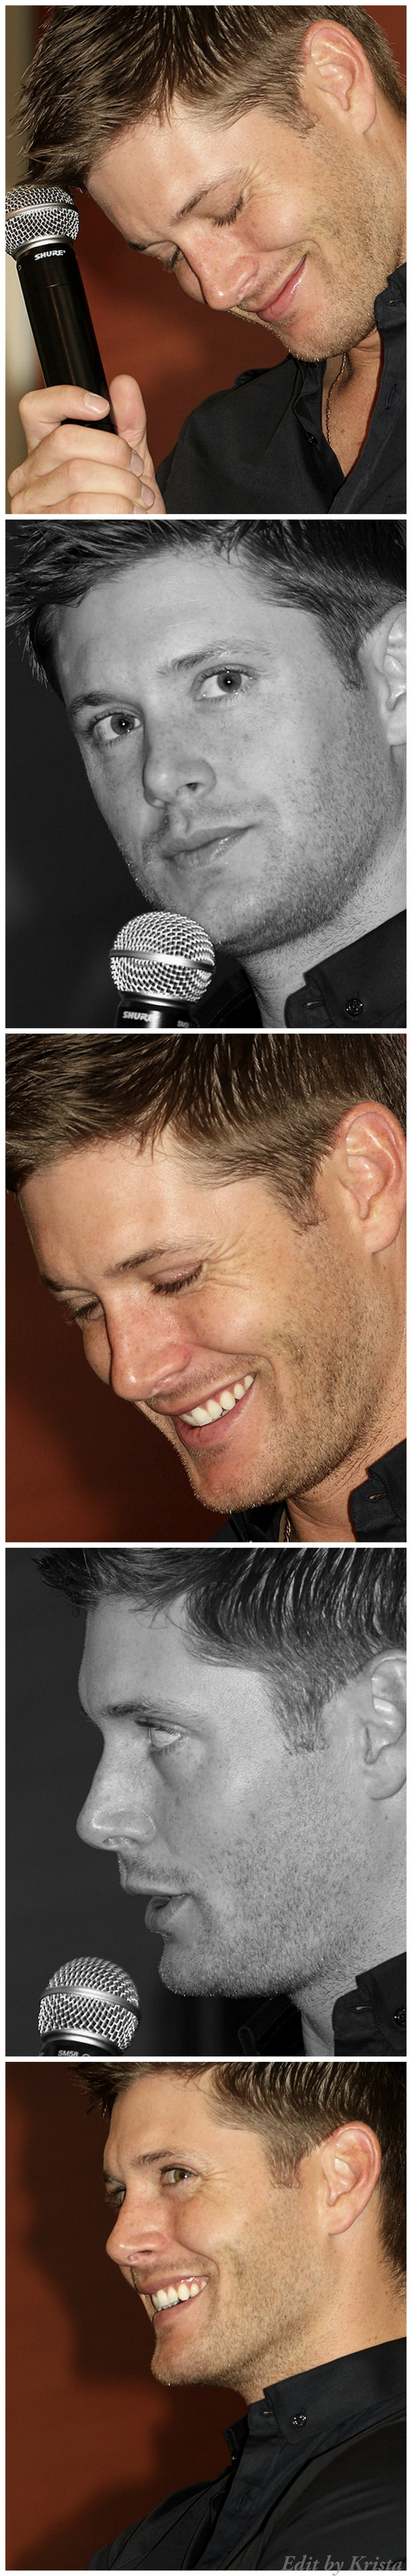 Jensen Ackles and his gorgeous eyelashes at -VanCon 2011 Breakfast Panel edit by Krista